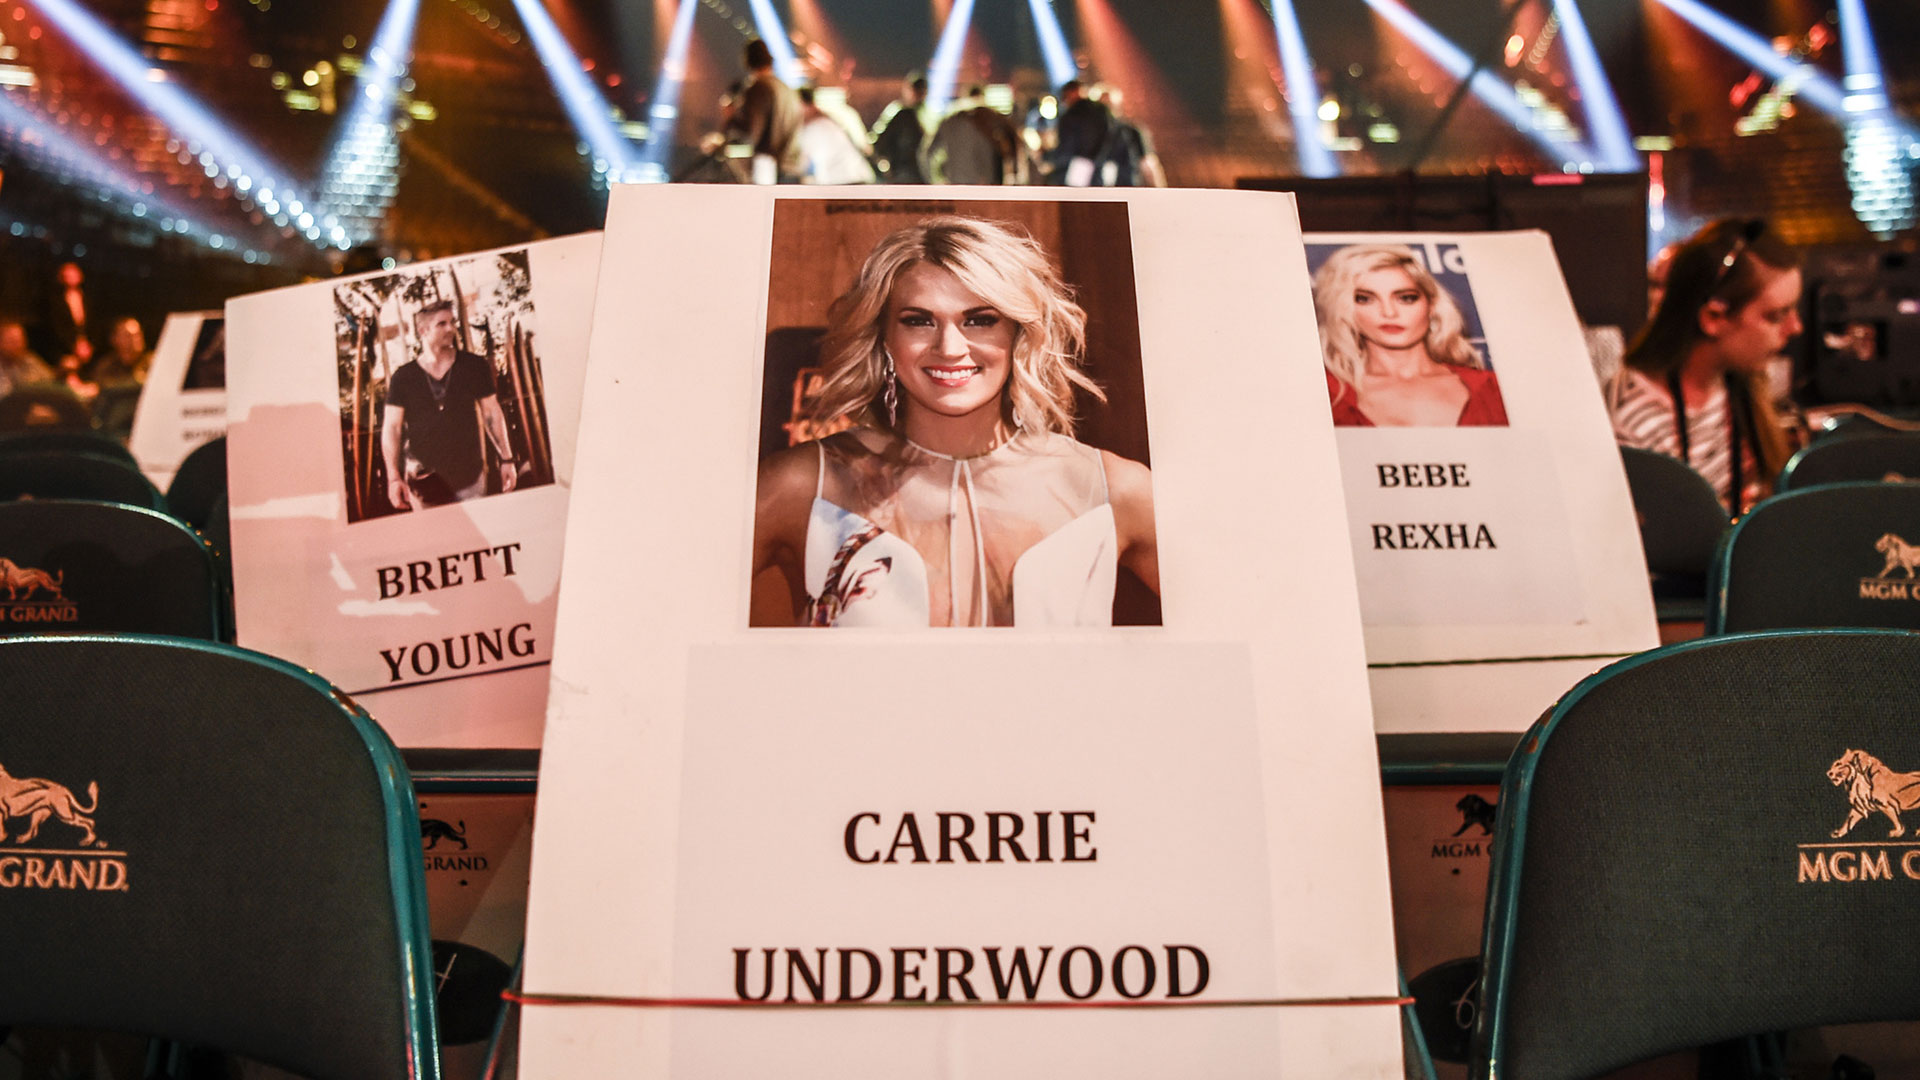 Expect to see Carrie Underwood in the crowd near Brett Young before she debuts her brand-new single live on stage.